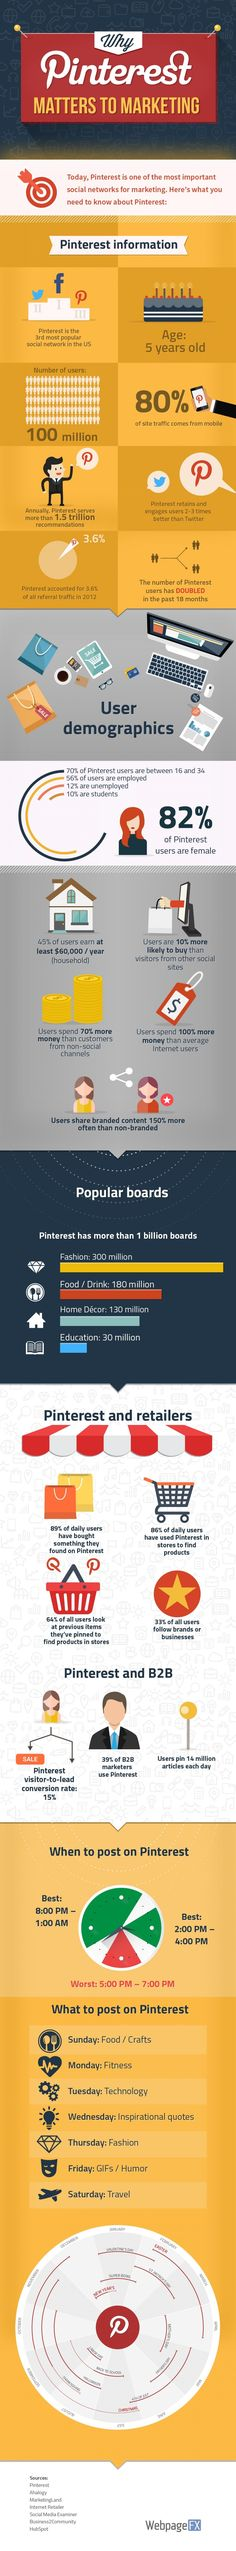 Why Pinterest Matters to Marketing